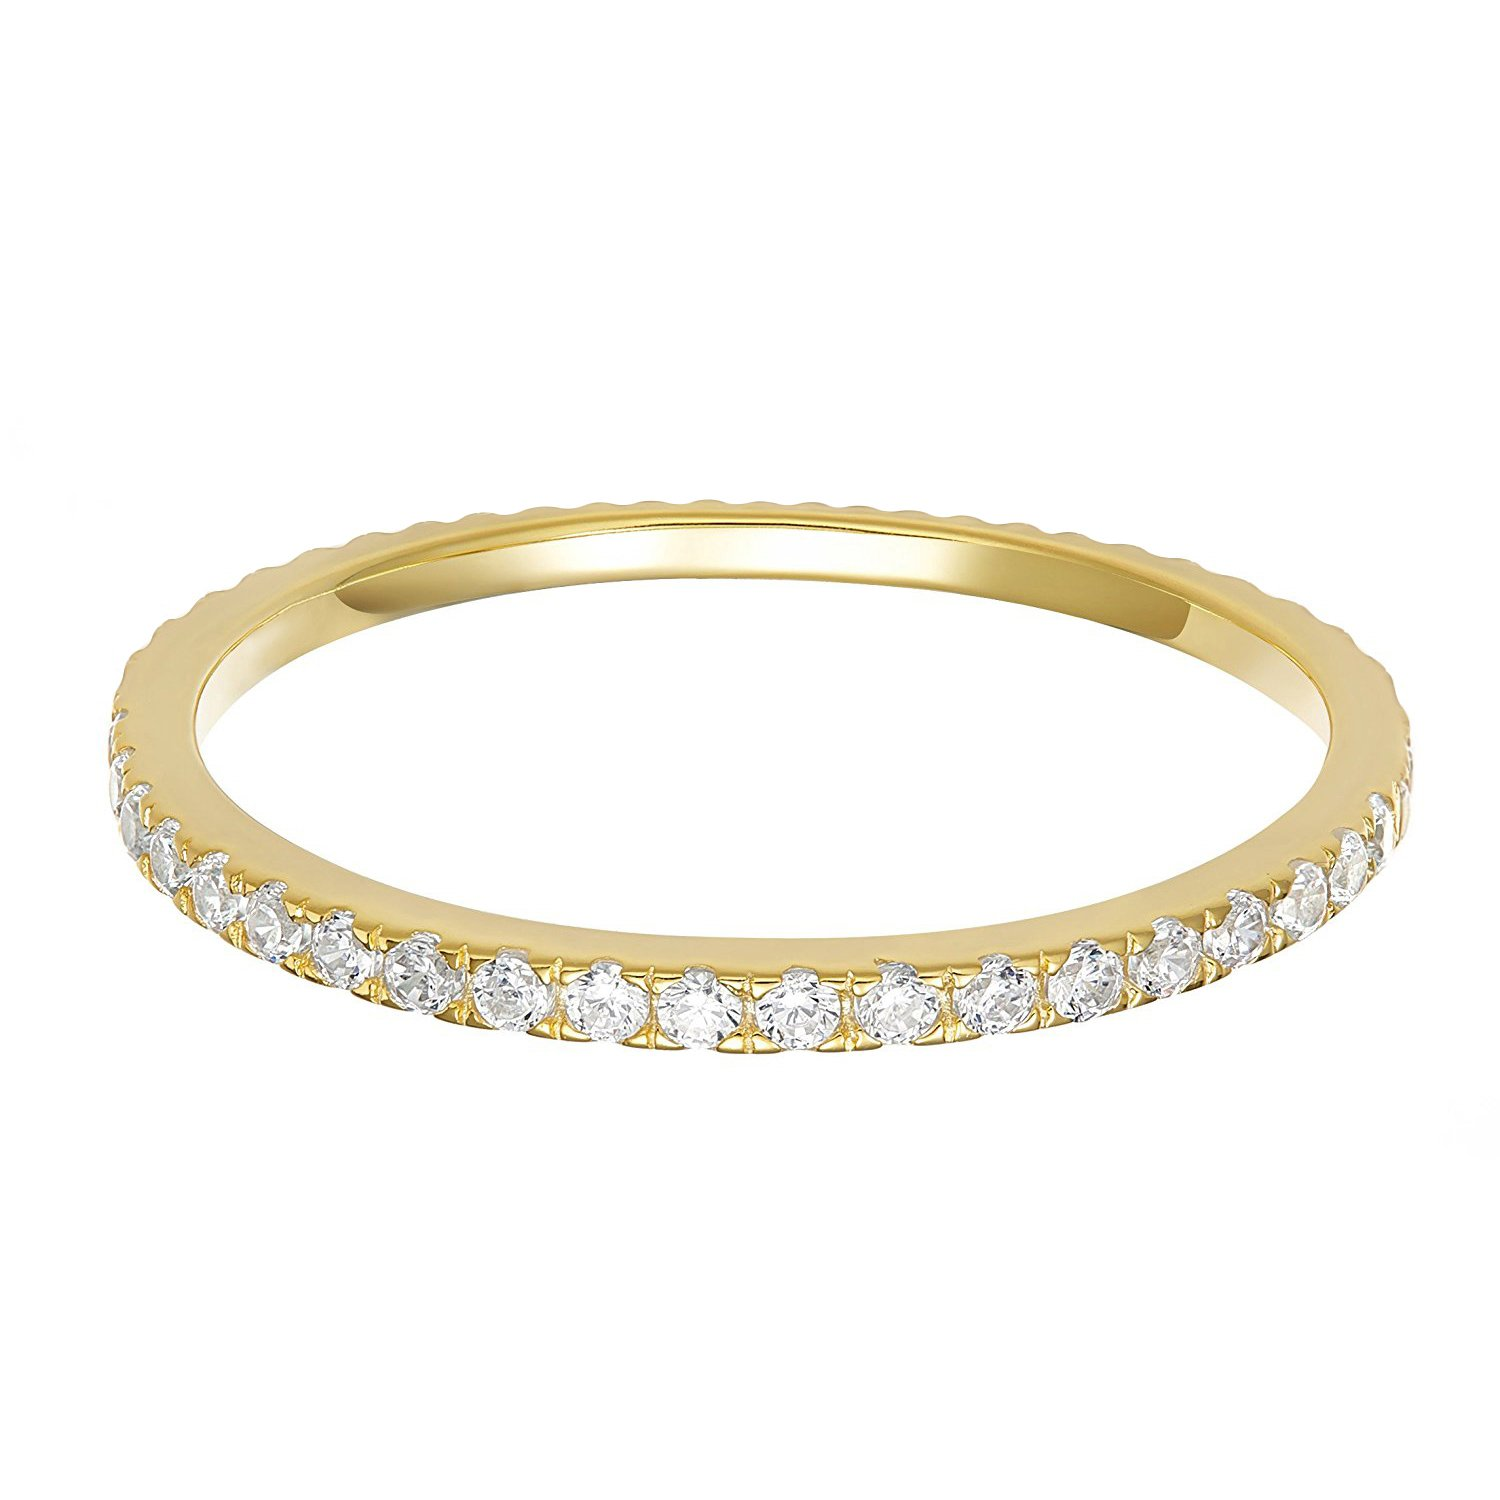 PAVOI AAAAA CZ 14K YELLOW GOLD Plated Silver Cubic Zirconia Stackable Eternity Ring - Size 5 by PAVOI (Image #1)